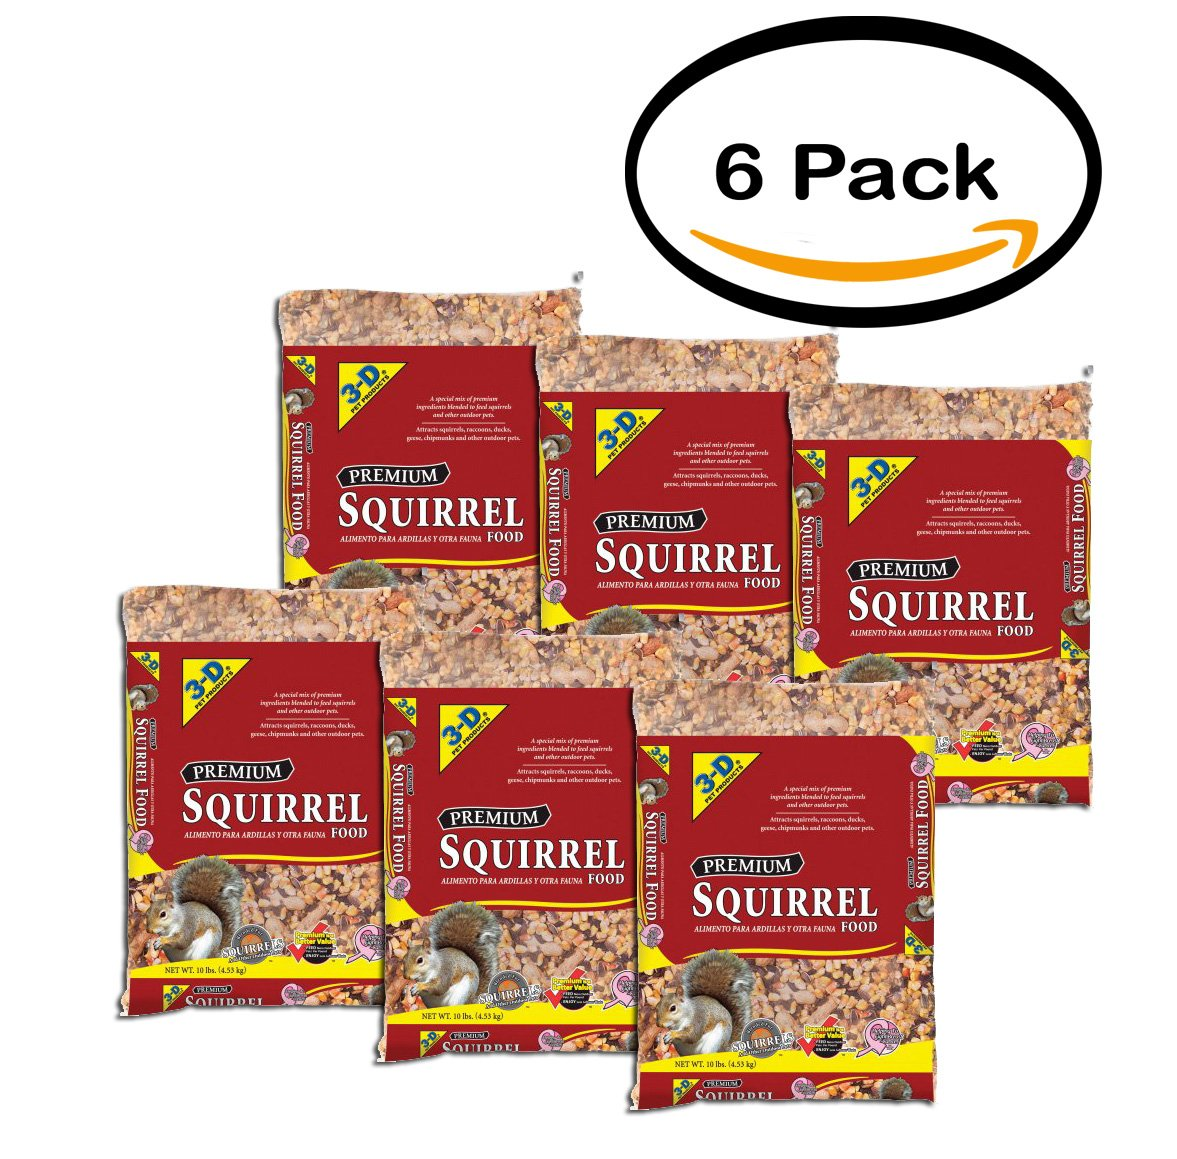 PACK OF 6 - 3D 10LB SQUIRREL FOOD by Generic